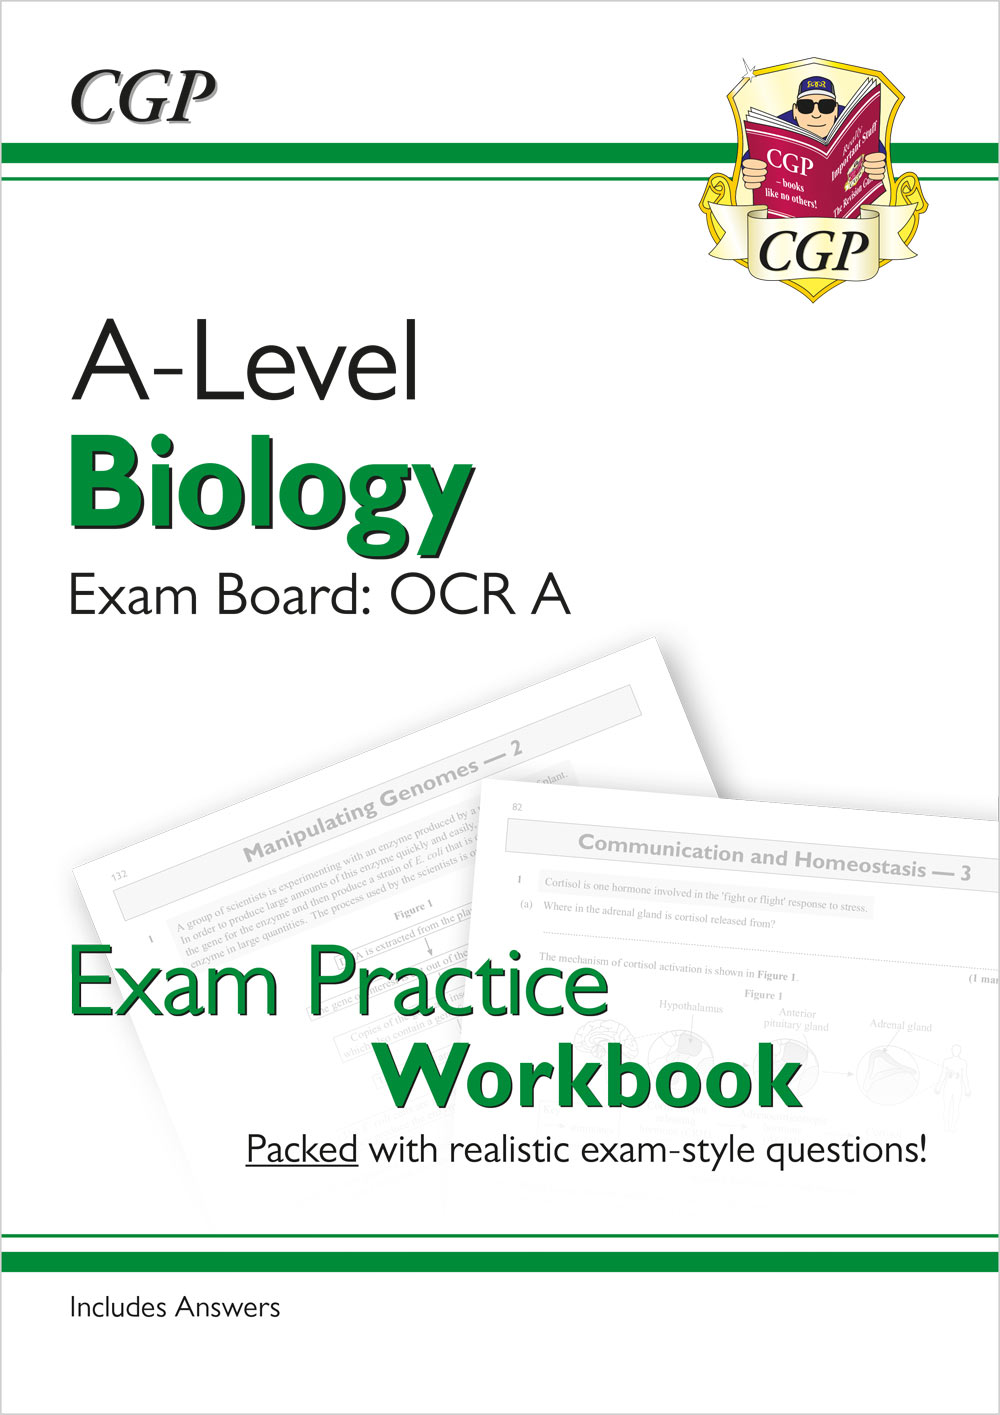 BRAQ71 - New A-Level Biology for 2018: OCR A Year 1 & 2 Exam Practice Workbook - includes Answers